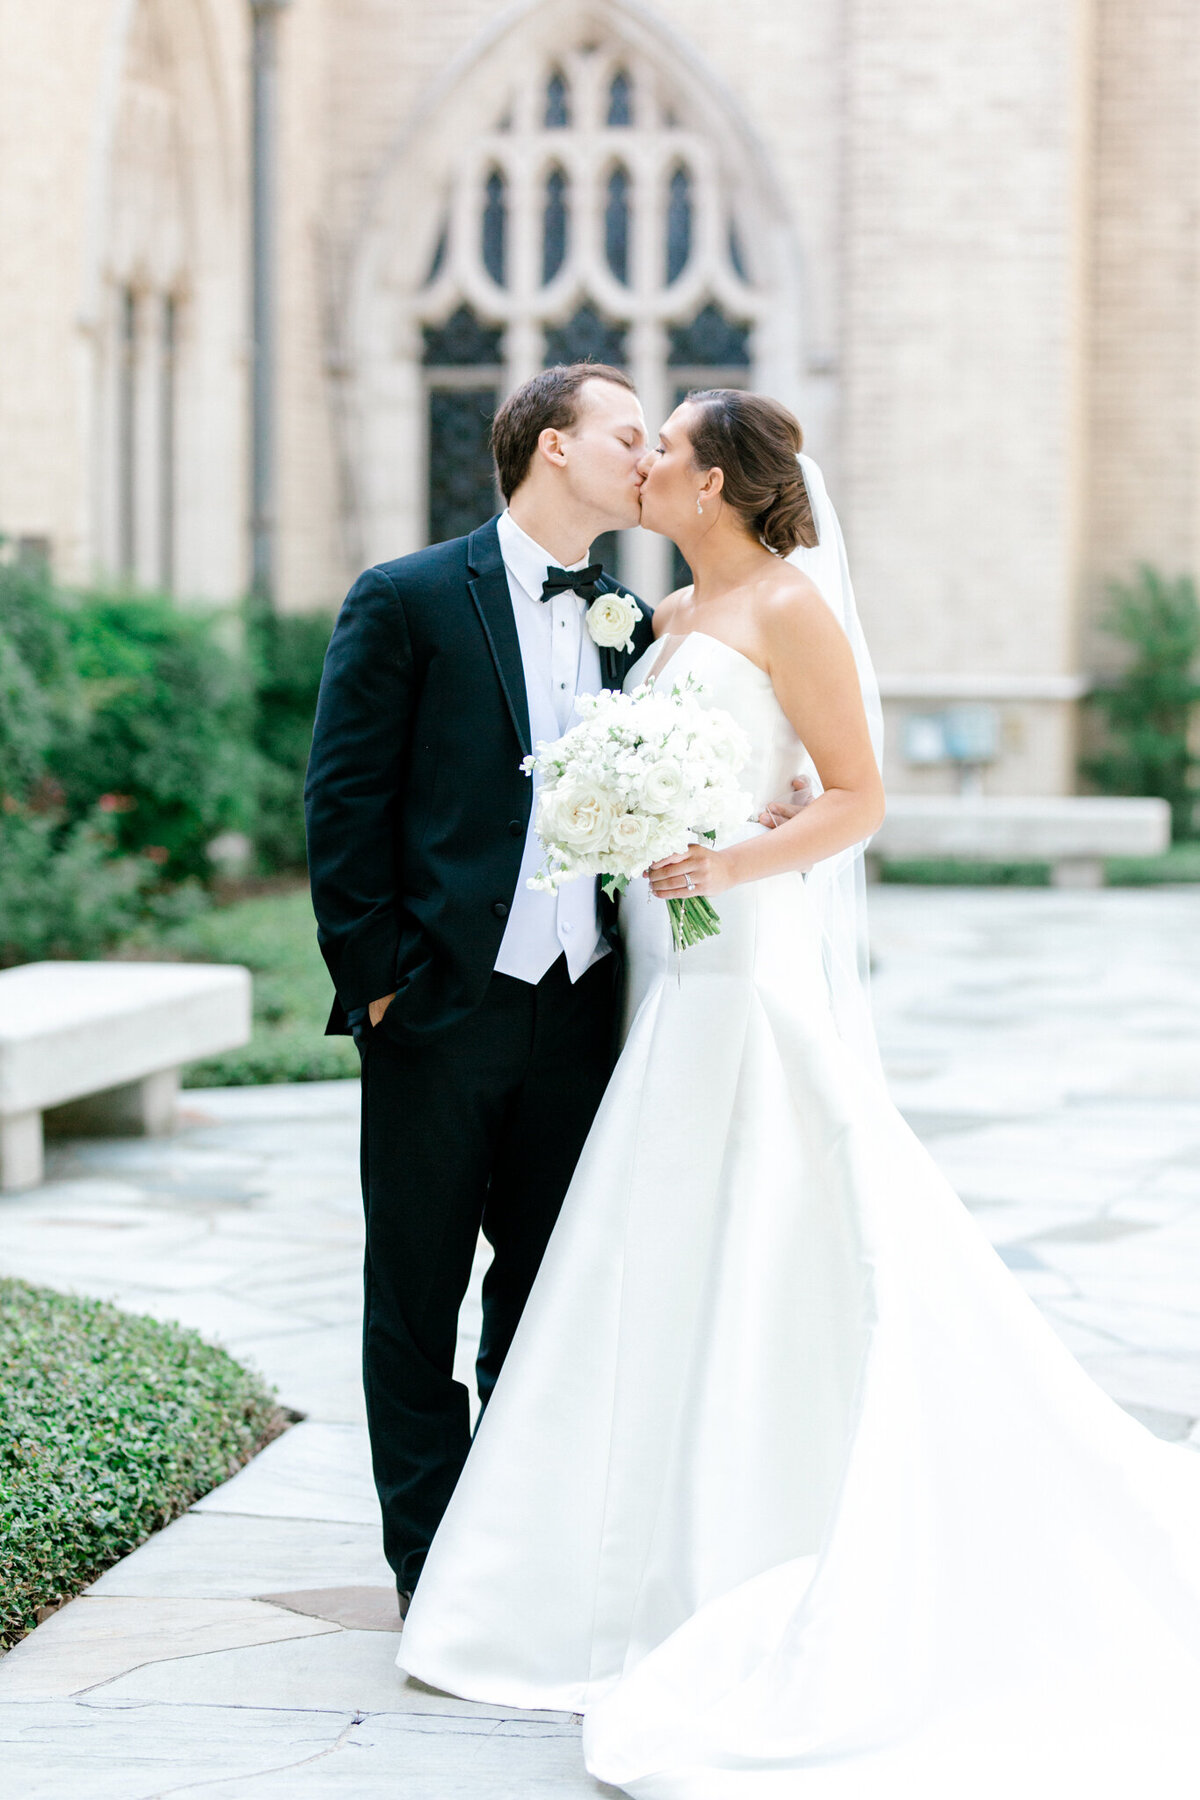 Wedding at the Crescent Court Hotel and Highland Park United Methodist Church in Dallas | Sami Kathryn Photography | DFW Wedding Photographer-15